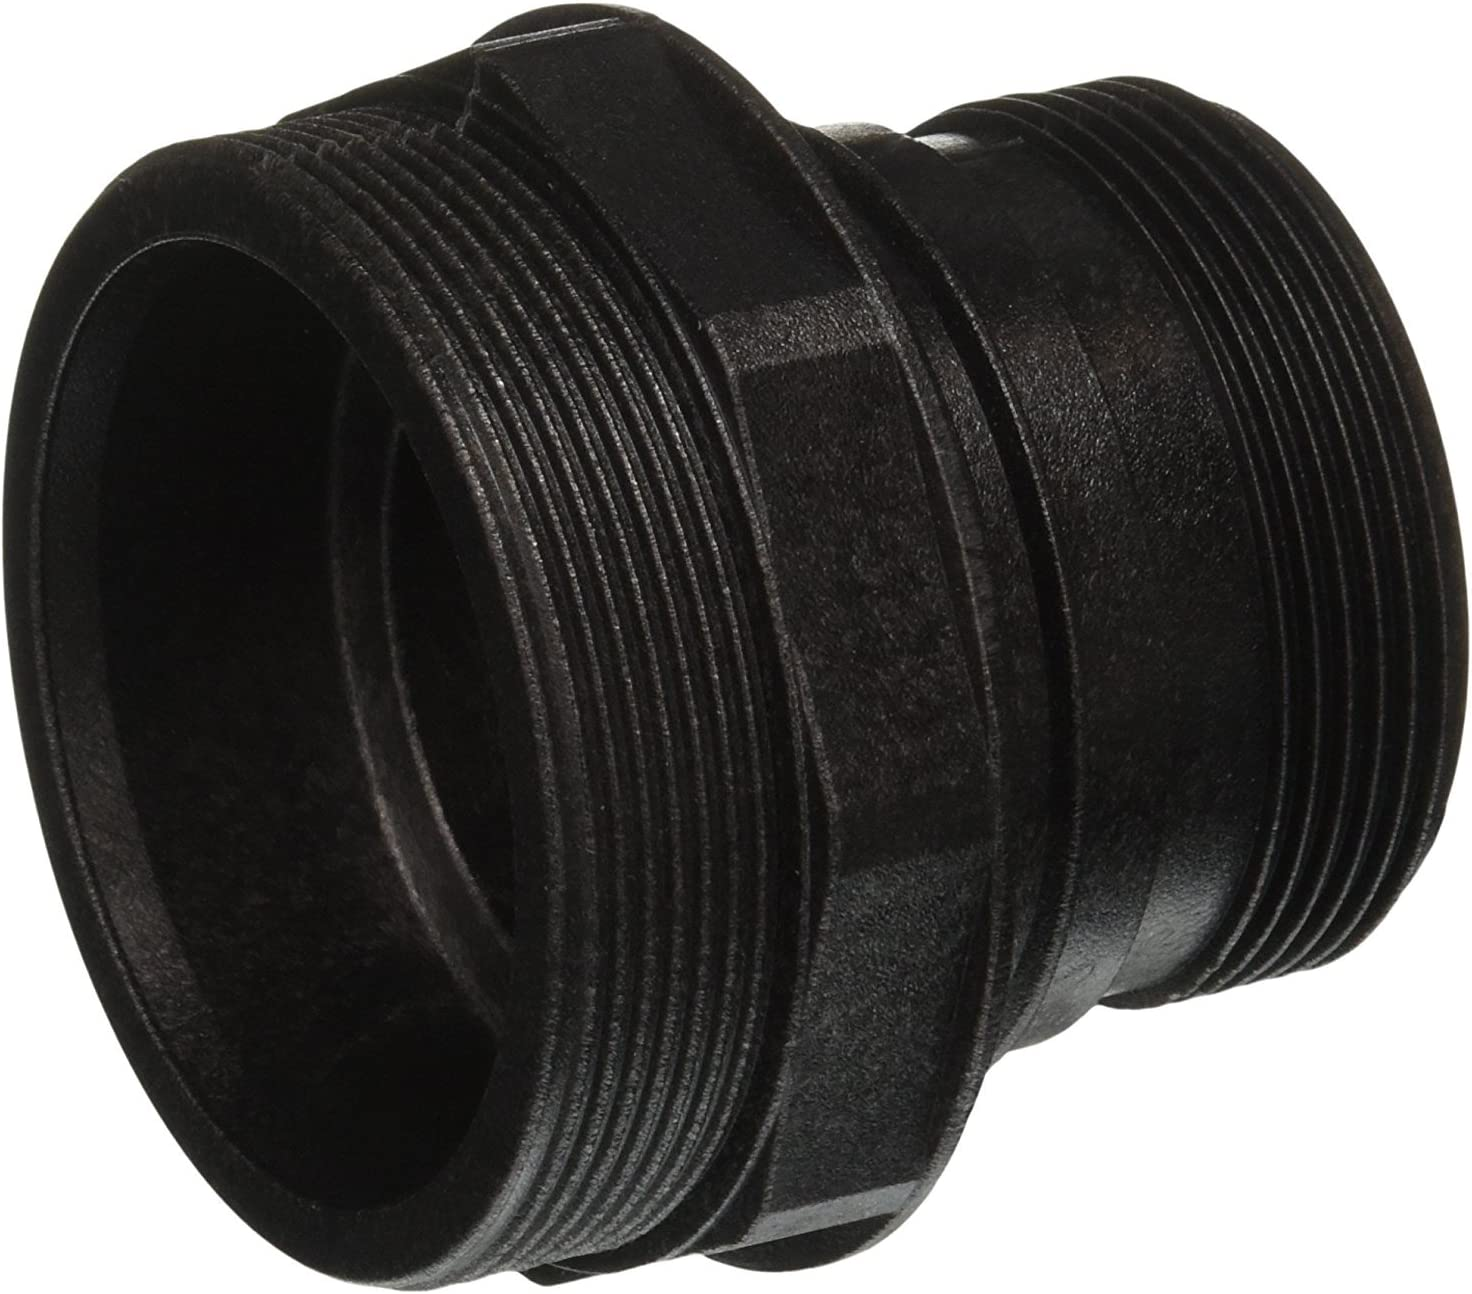 Hayward DEX2420F Bulkhead Fitting Replacement for Select Hayward Filters